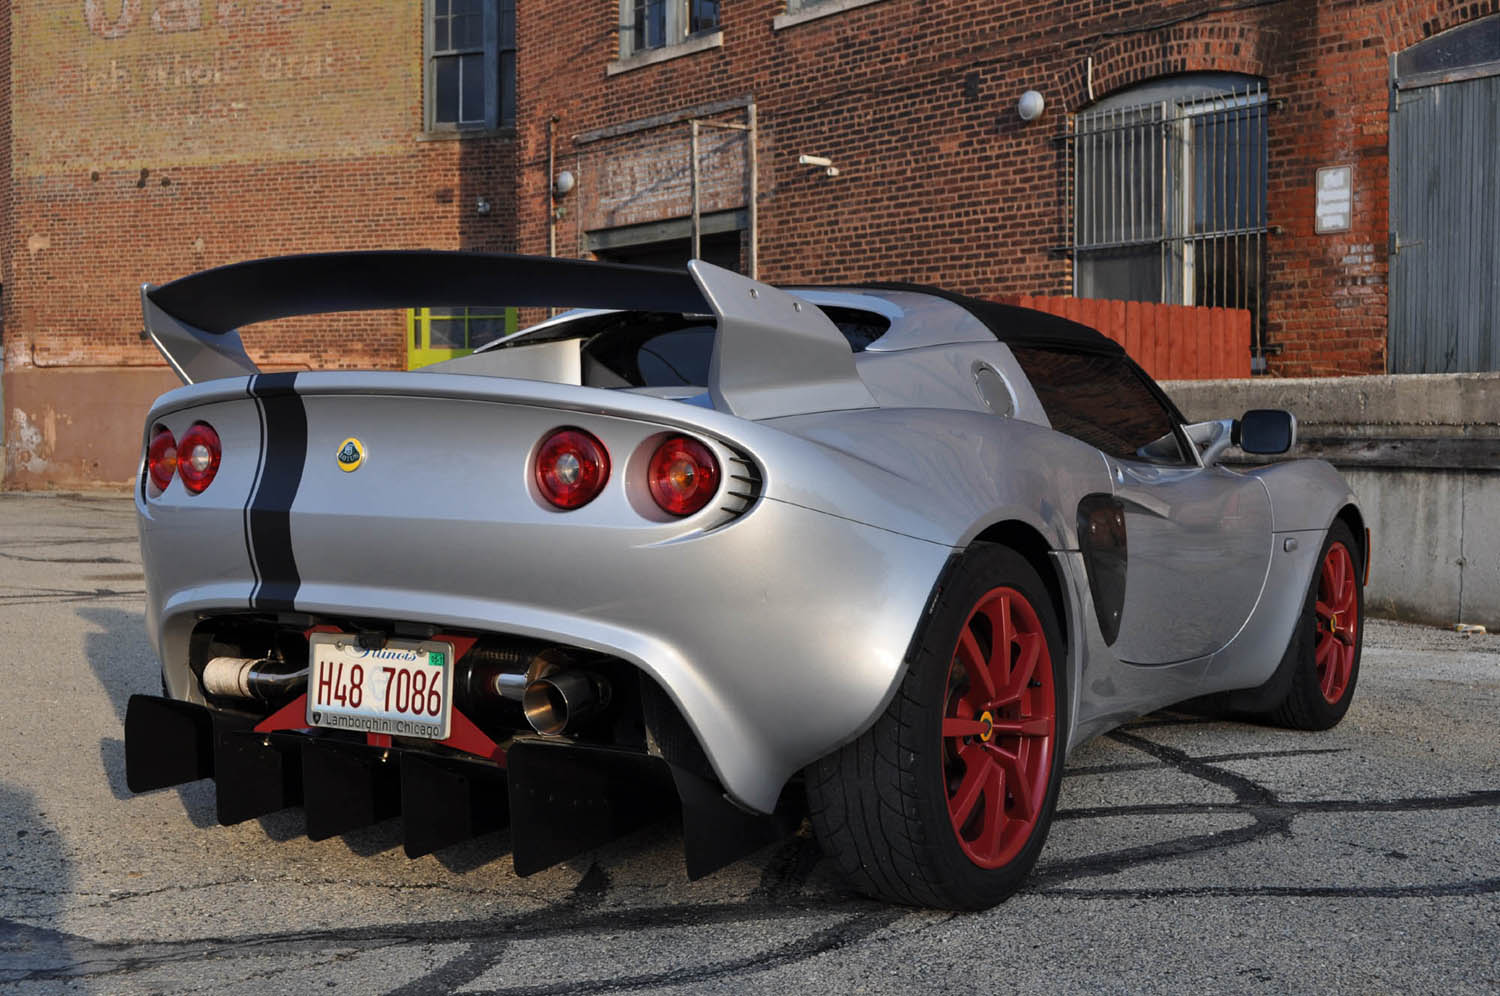 Eliminator Drop Links 163677d1301715642-official-booty-thread-your-rear-end-exhaust-diffuser-photo-dsc_0661_3485b